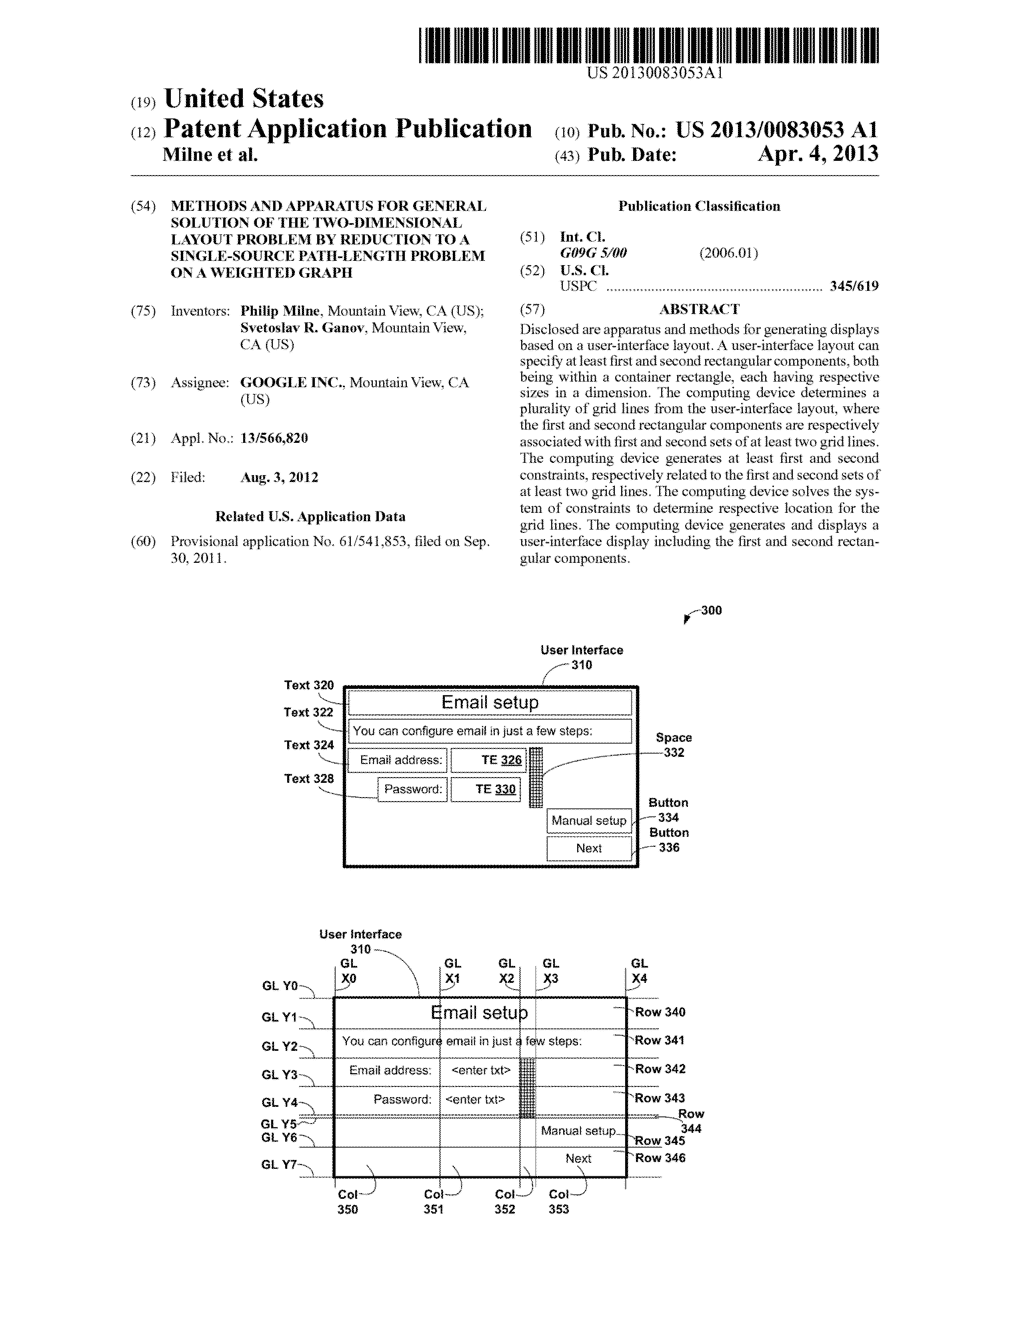 METHODS AND APPARATUS FOR GENERAL SOLUTION OF THE TWO-DIMENSIONAL LAYOUT     PROBLEM BY REDUCTION TO A SINGLE-SOURCE PATH-LENGTH PROBLEM ON A WEIGHTED     GRAPH - diagram, schematic, and image 01